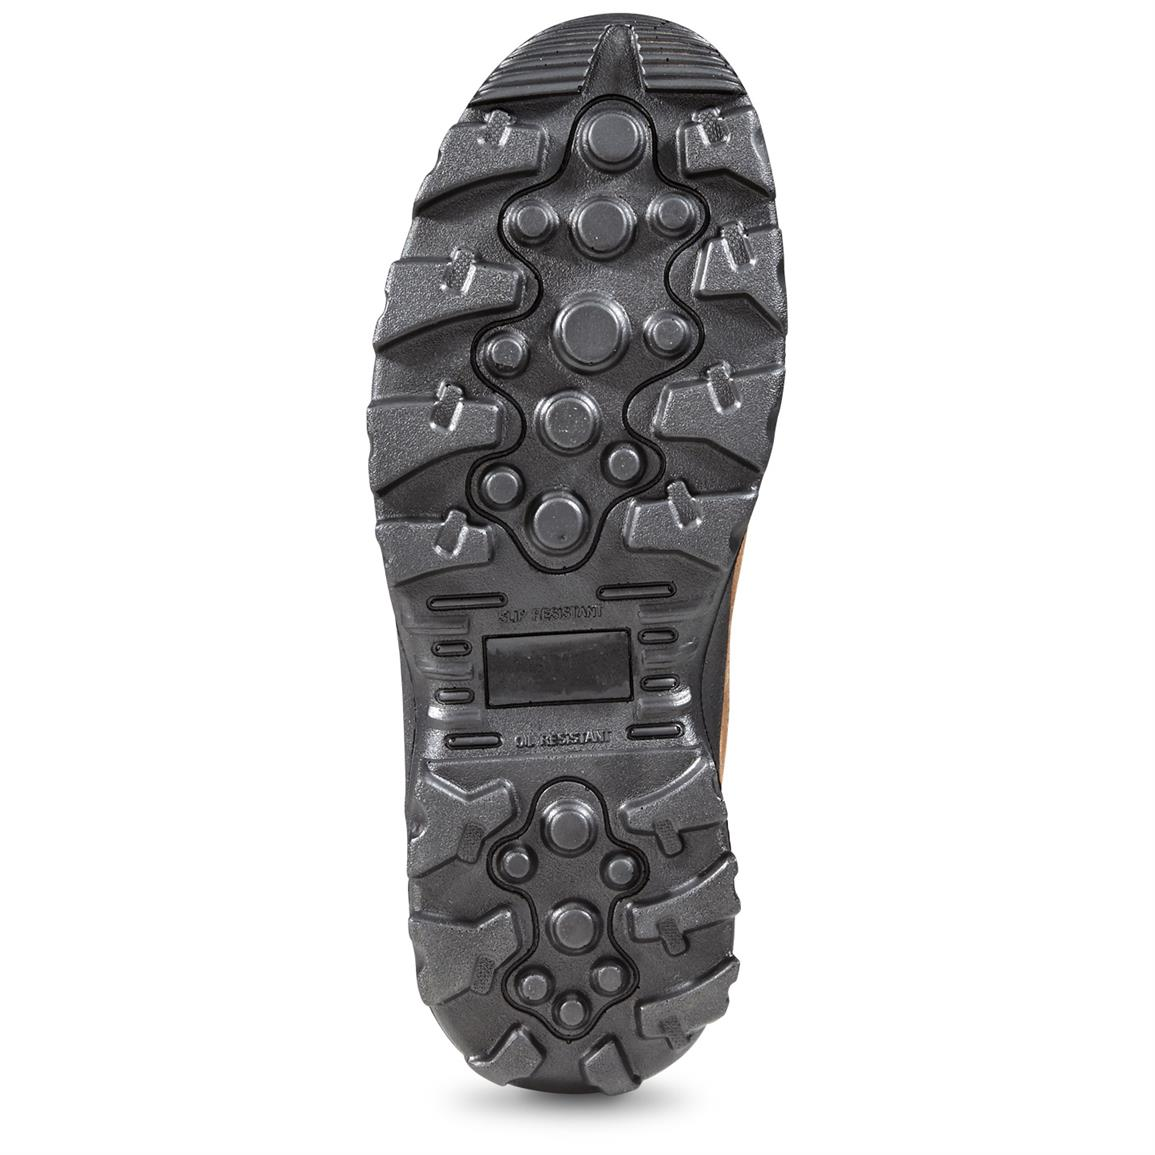 Rugged TPR outsole provides top traction